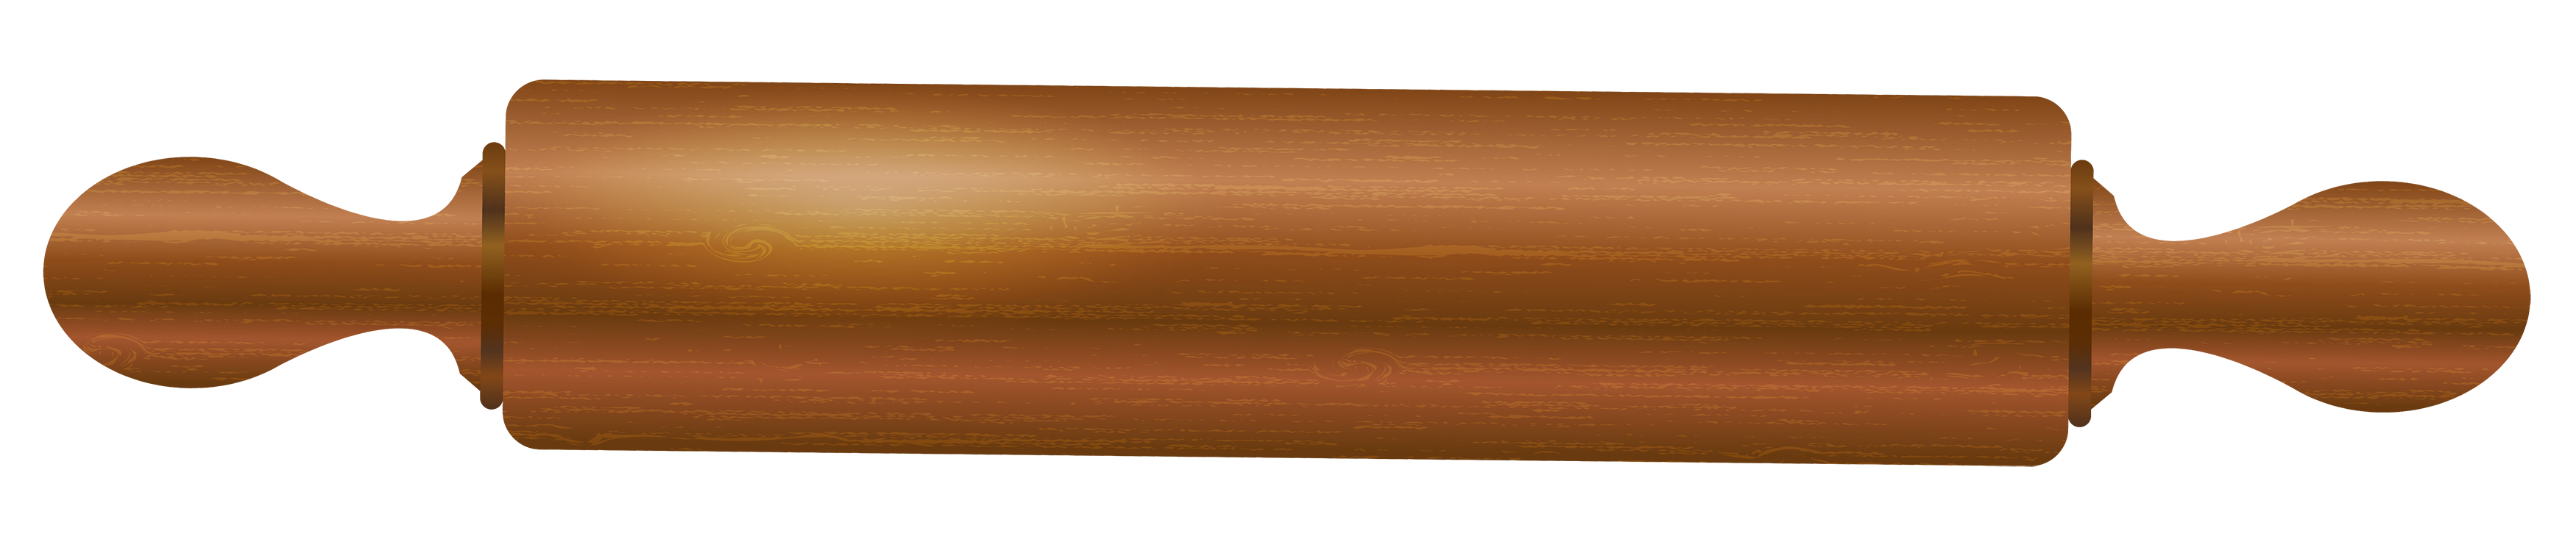 Wooden clipart best web. Rolling pin png image freeuse